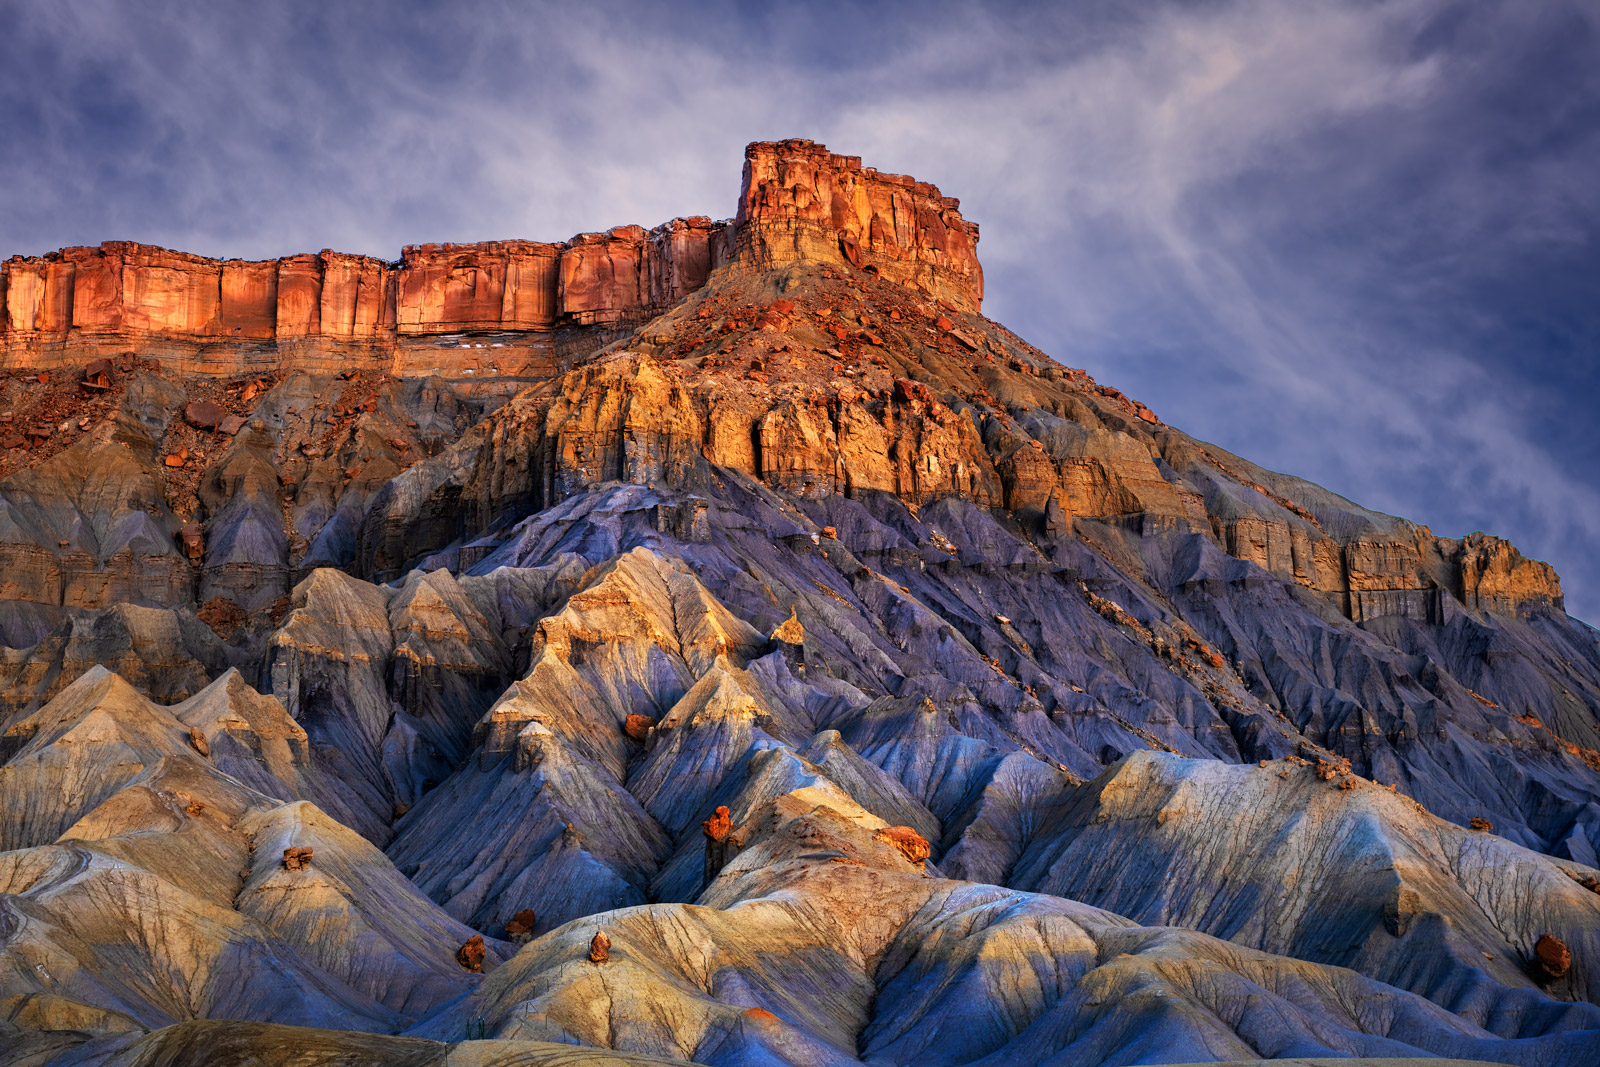 A Limited Edition, Fine Art photograph of sunrise light on a remote desert butte in the Desert Southwest in Utah. Available as...